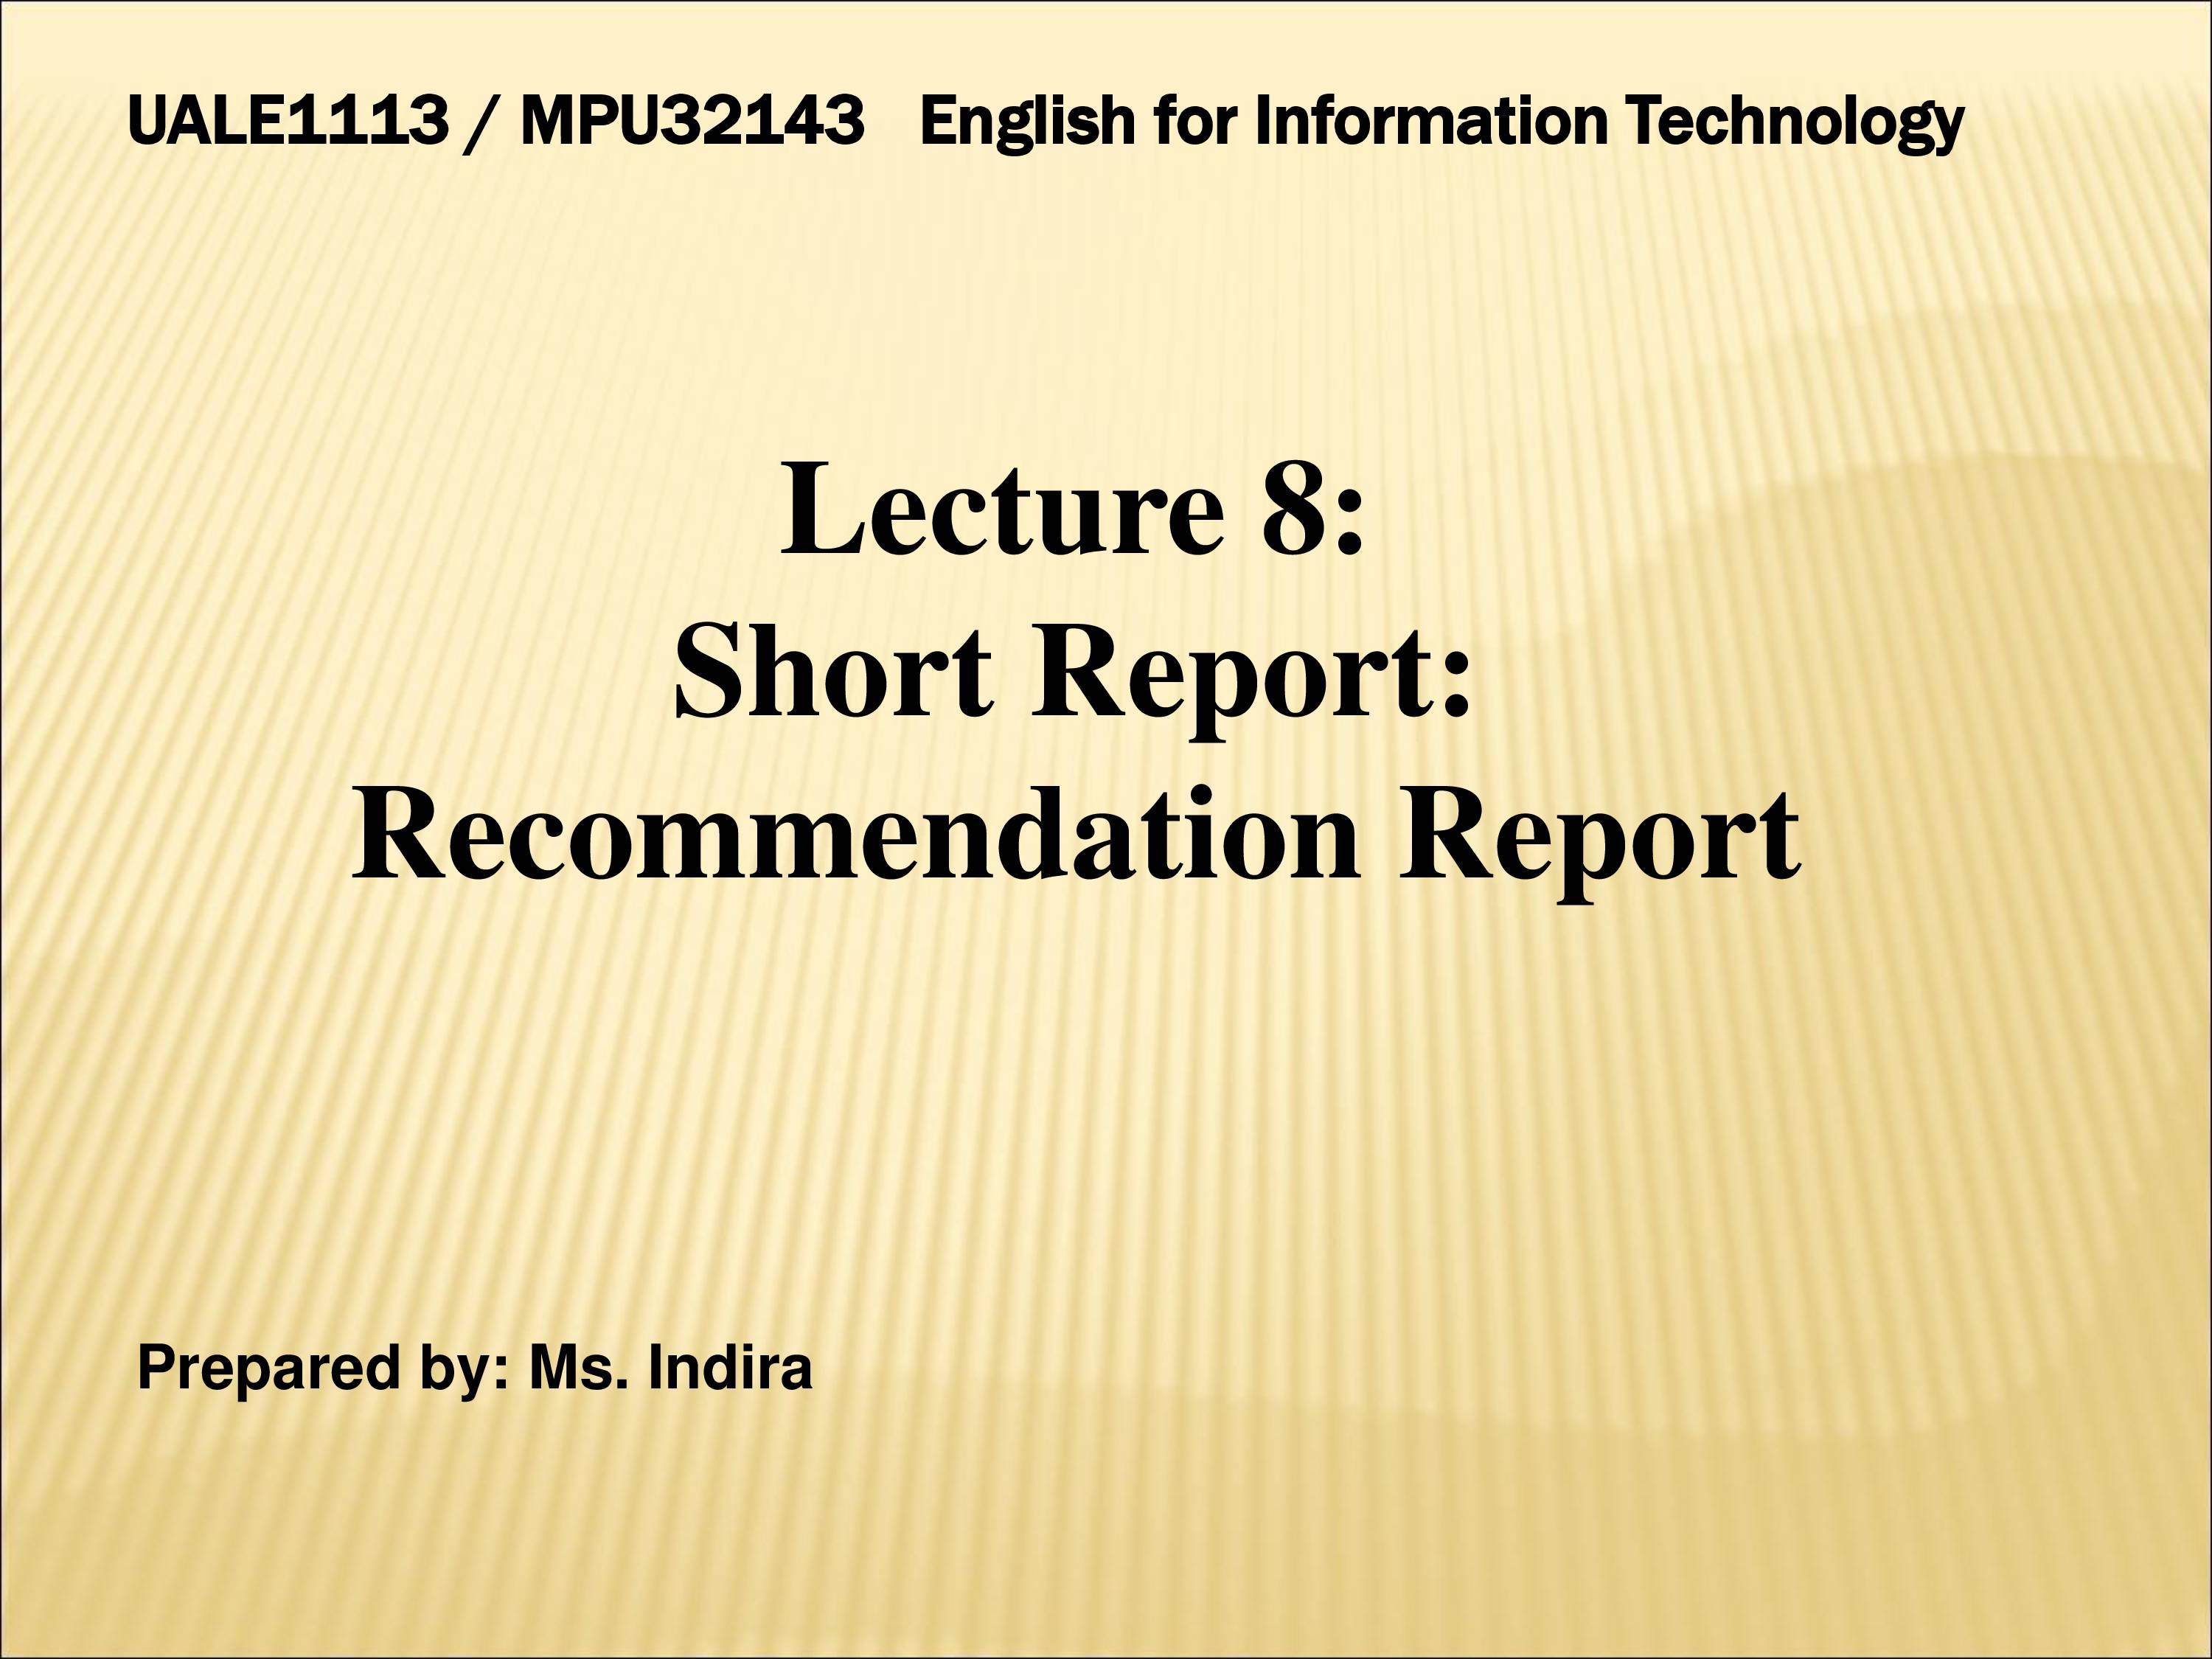 PPT On Writing Recommendation Report